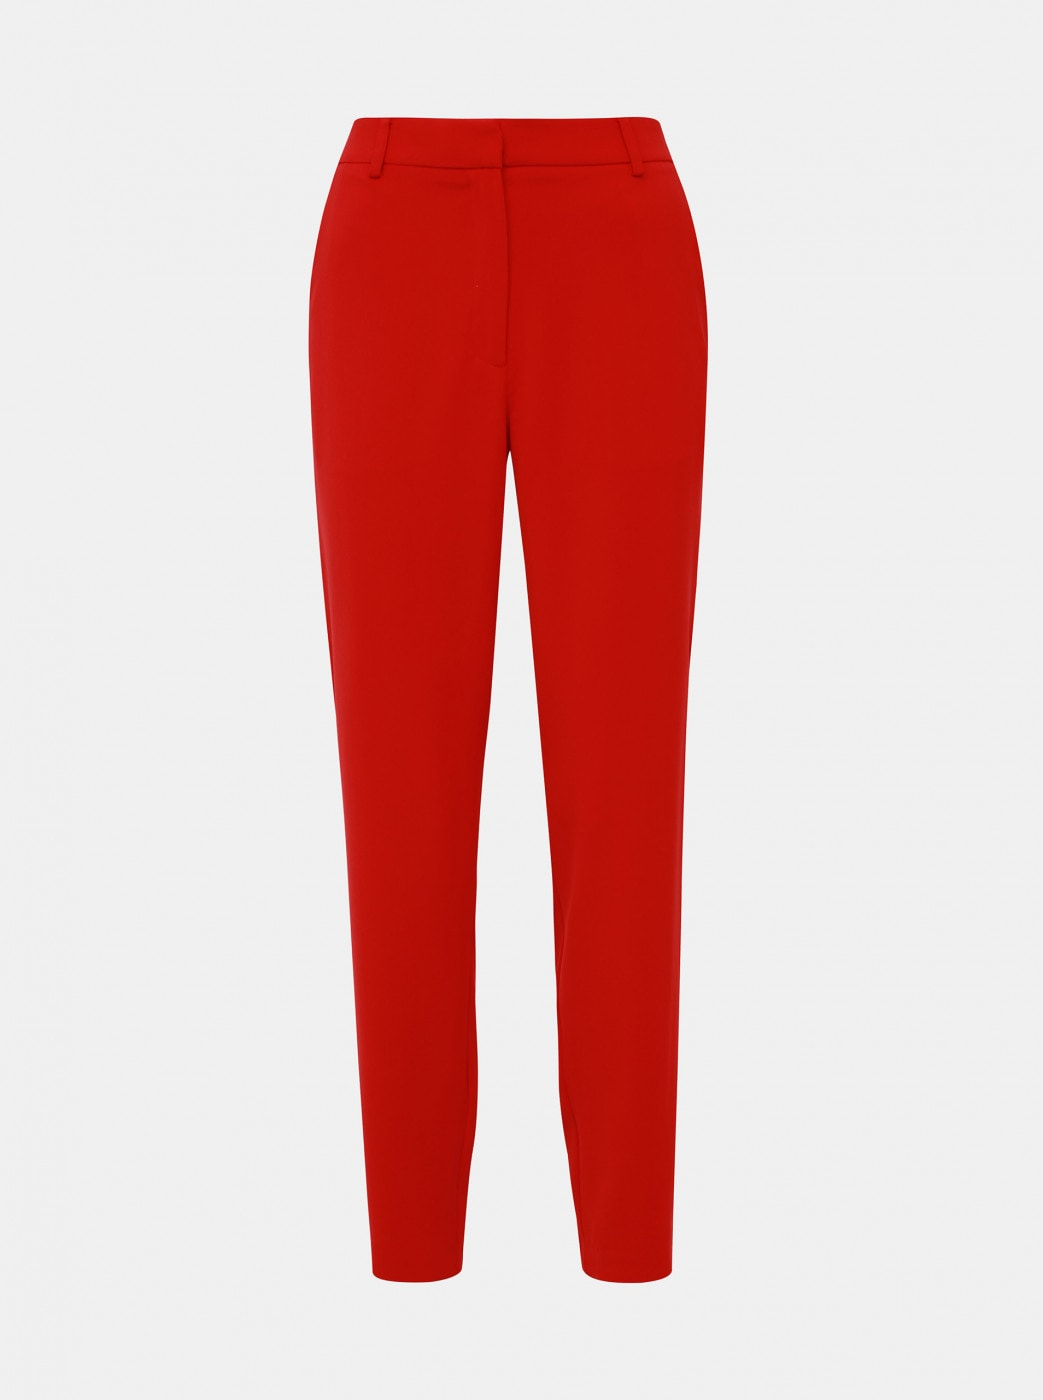 Red Pants Selected Femme Carla